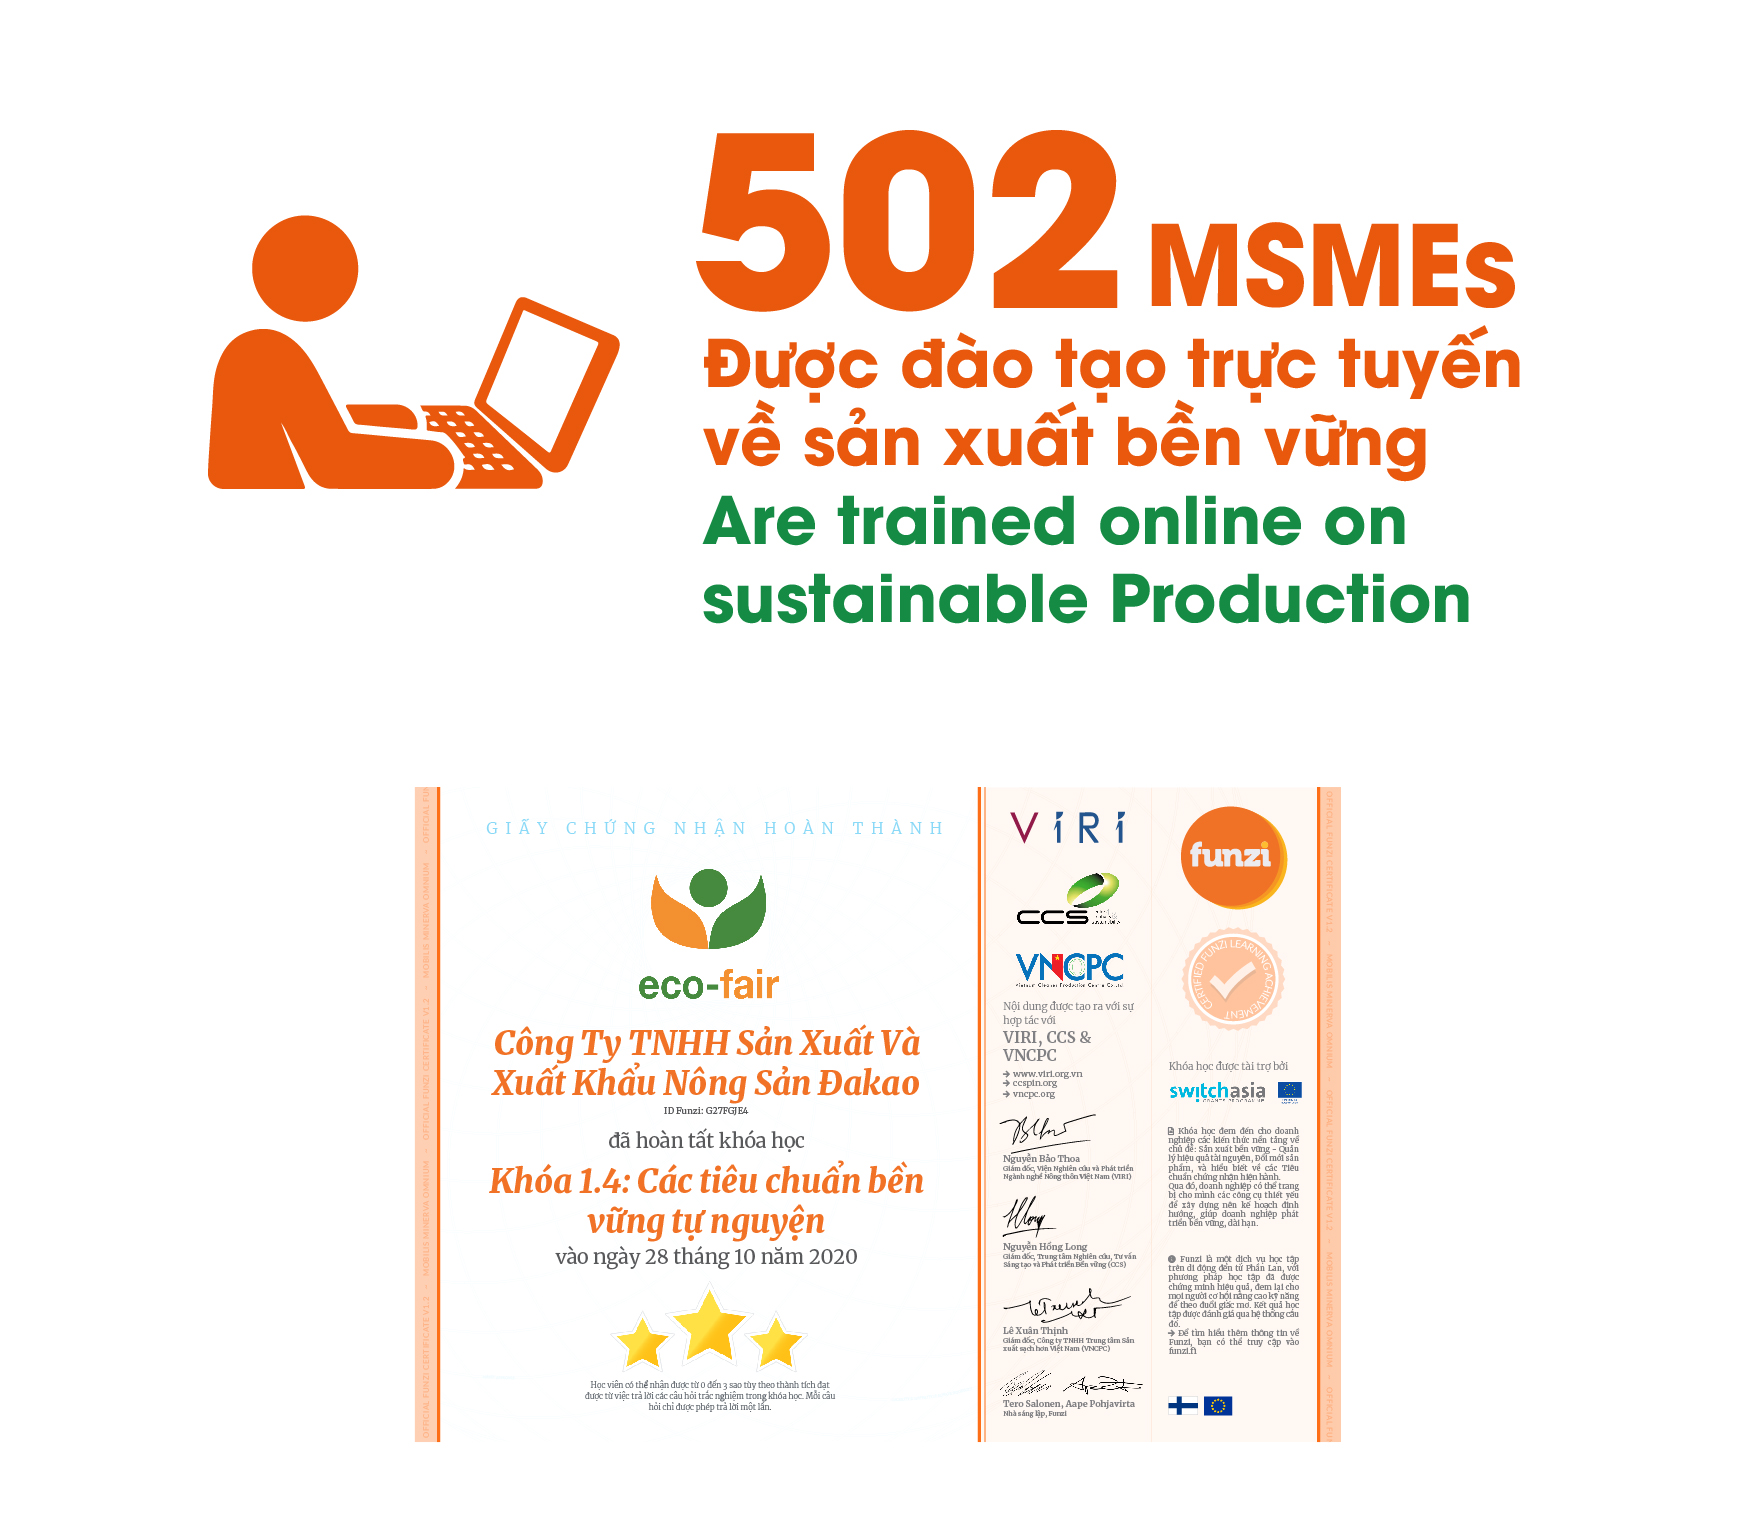 502 MSMEs are trained online on sustainable production